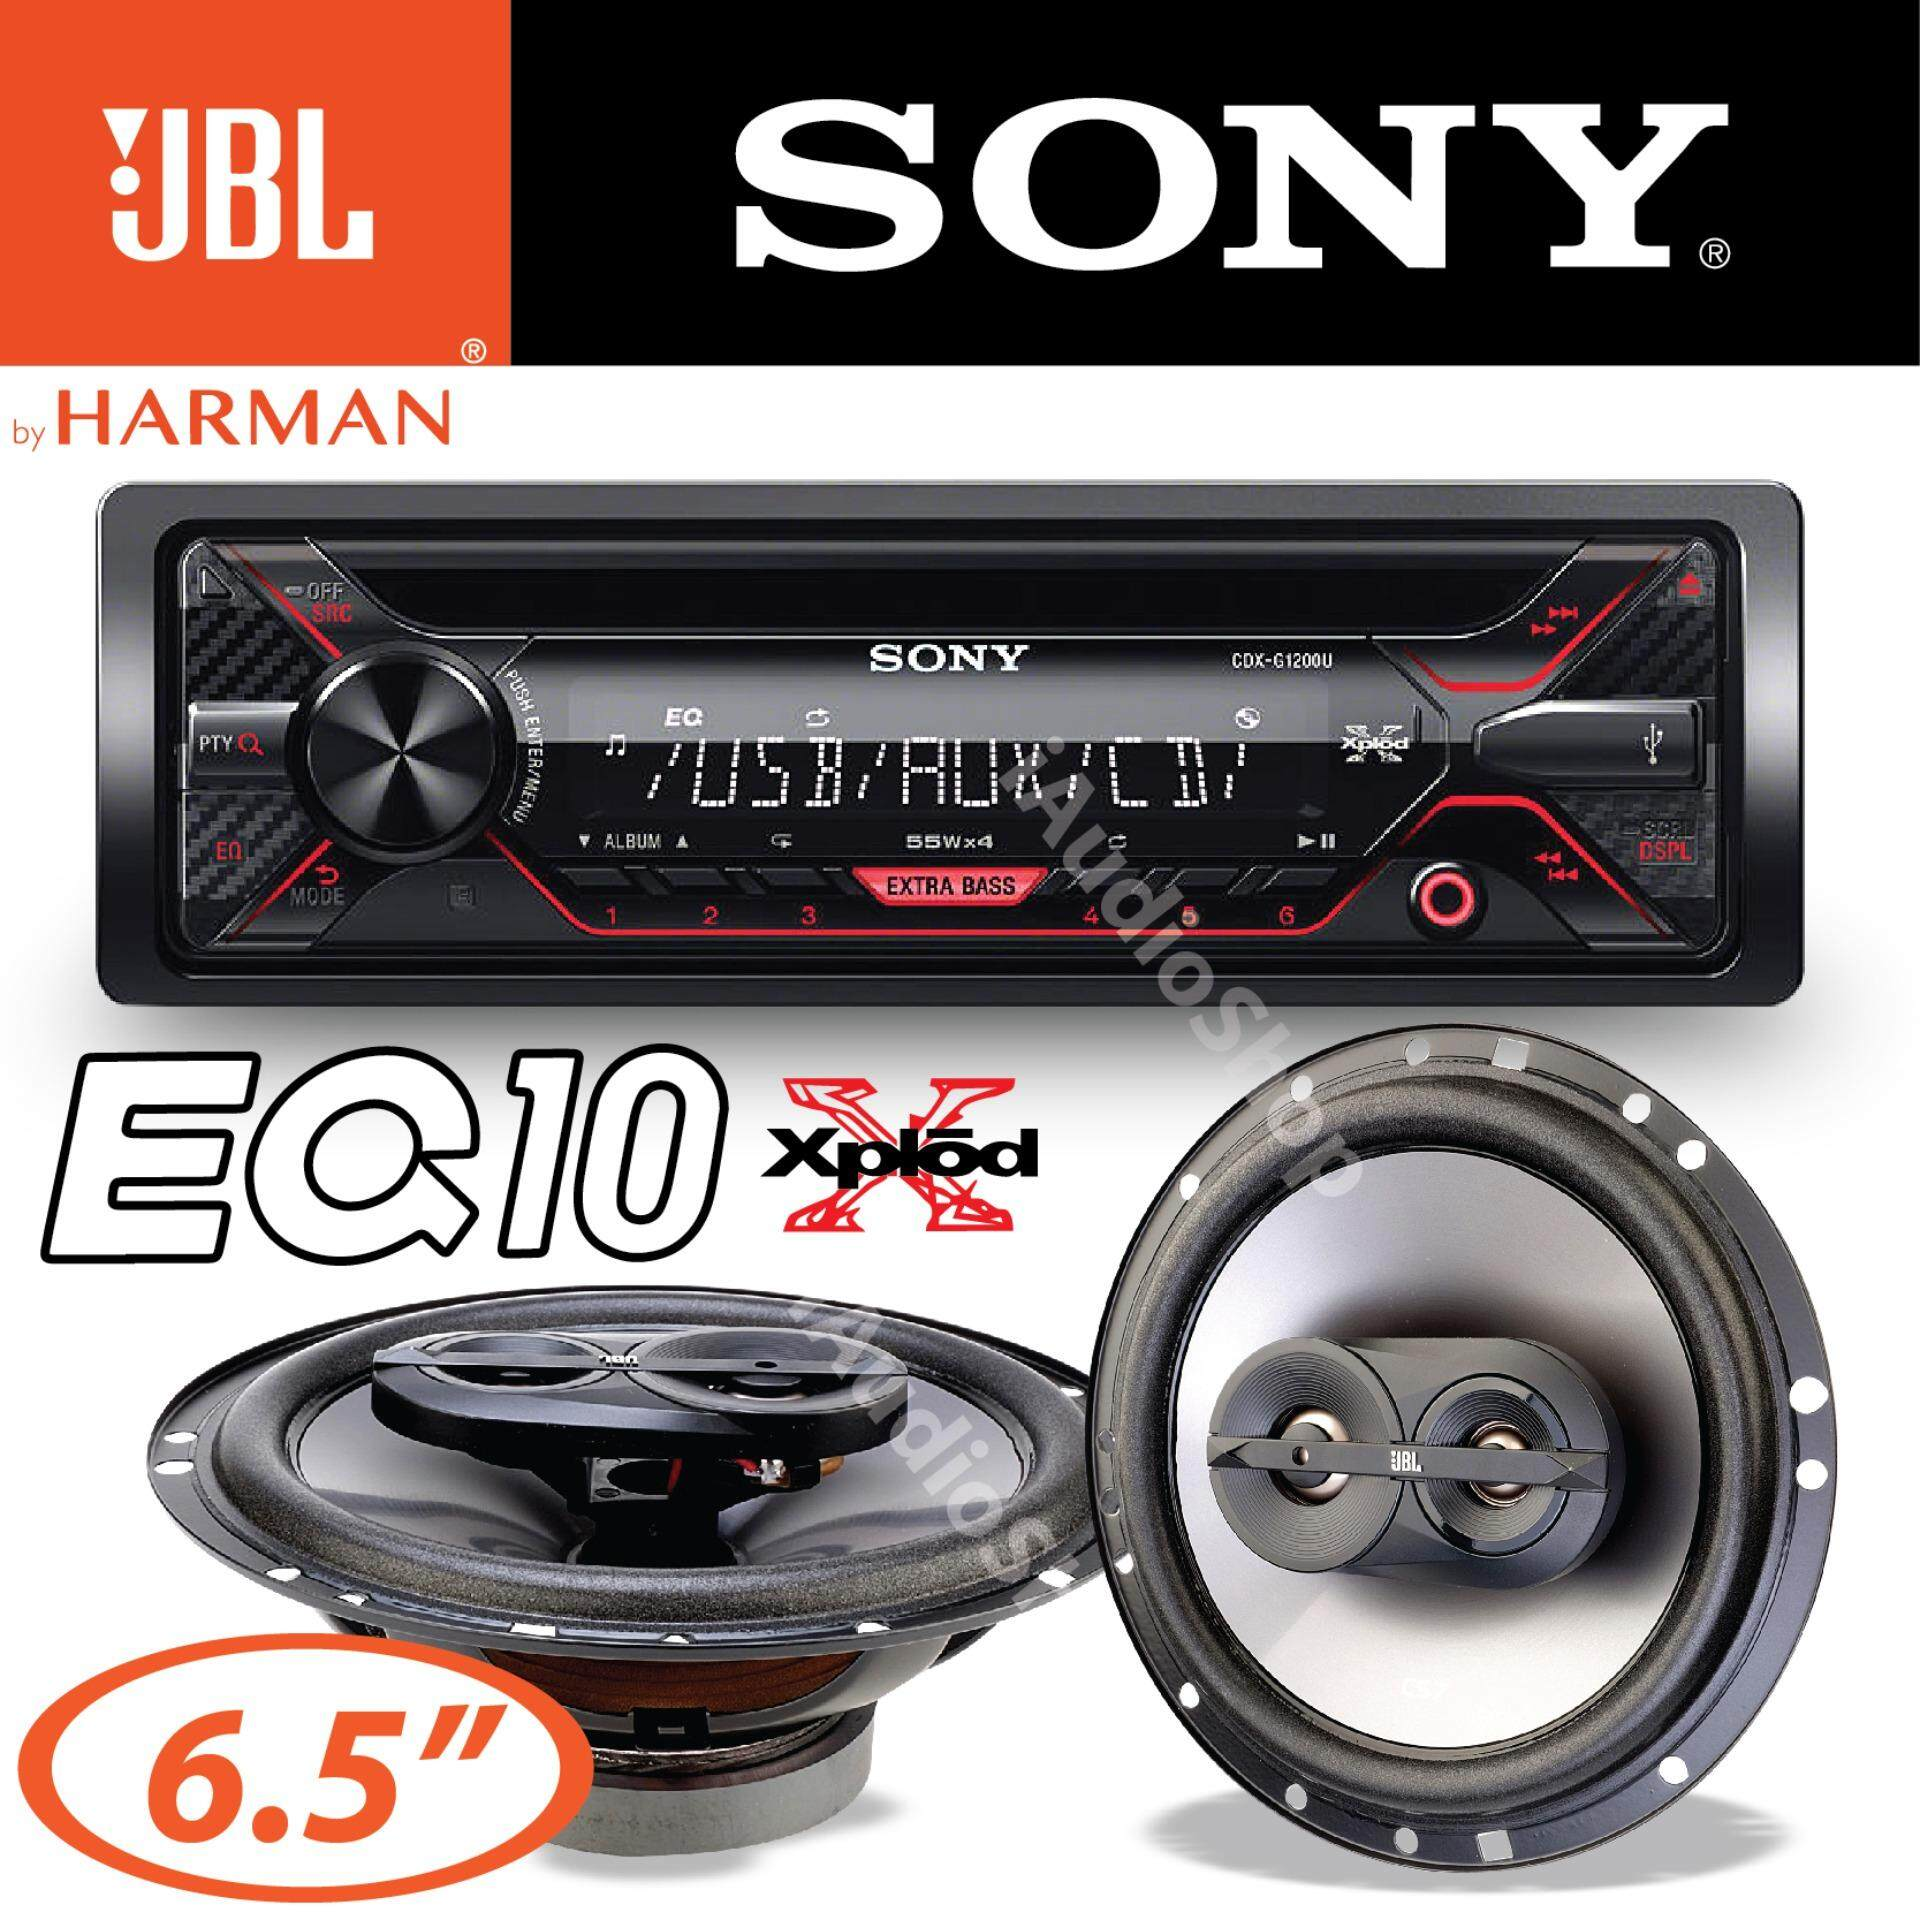 Attractive Sony Xplod Cdx S2210s Manual Mold - Electrical and Wiring ...